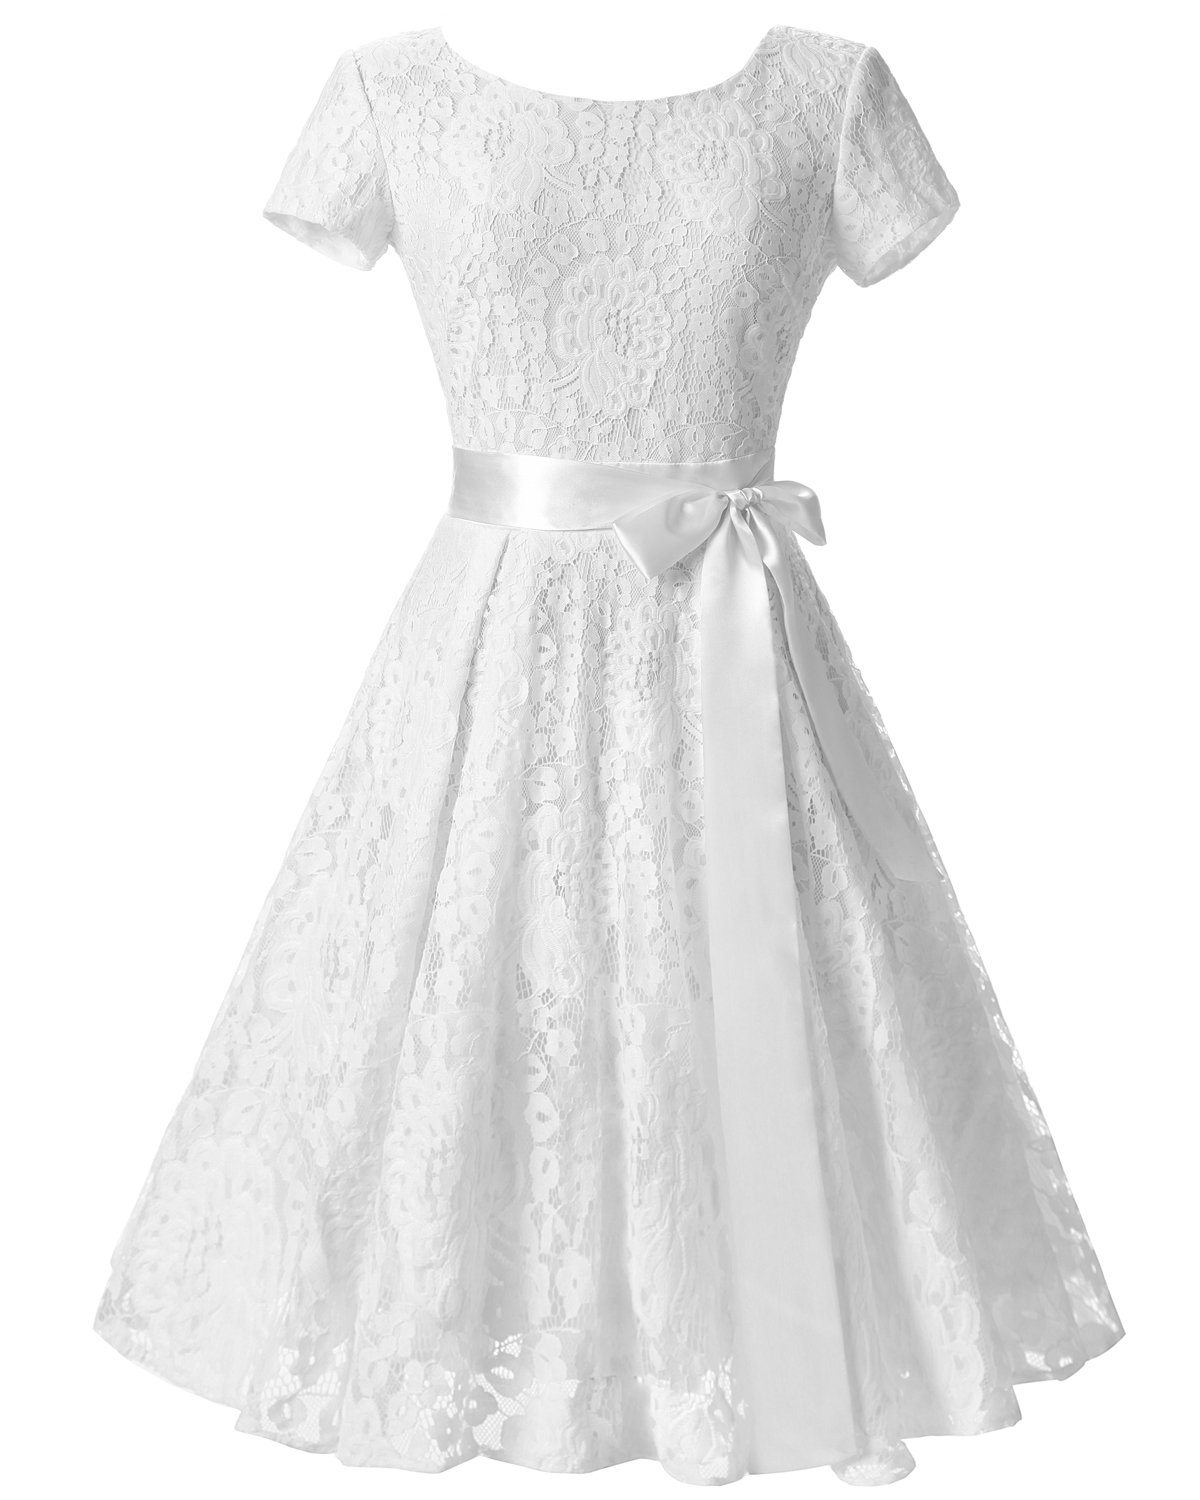 Women White Lace Retro Prom Dress With A bow tie W3517874A